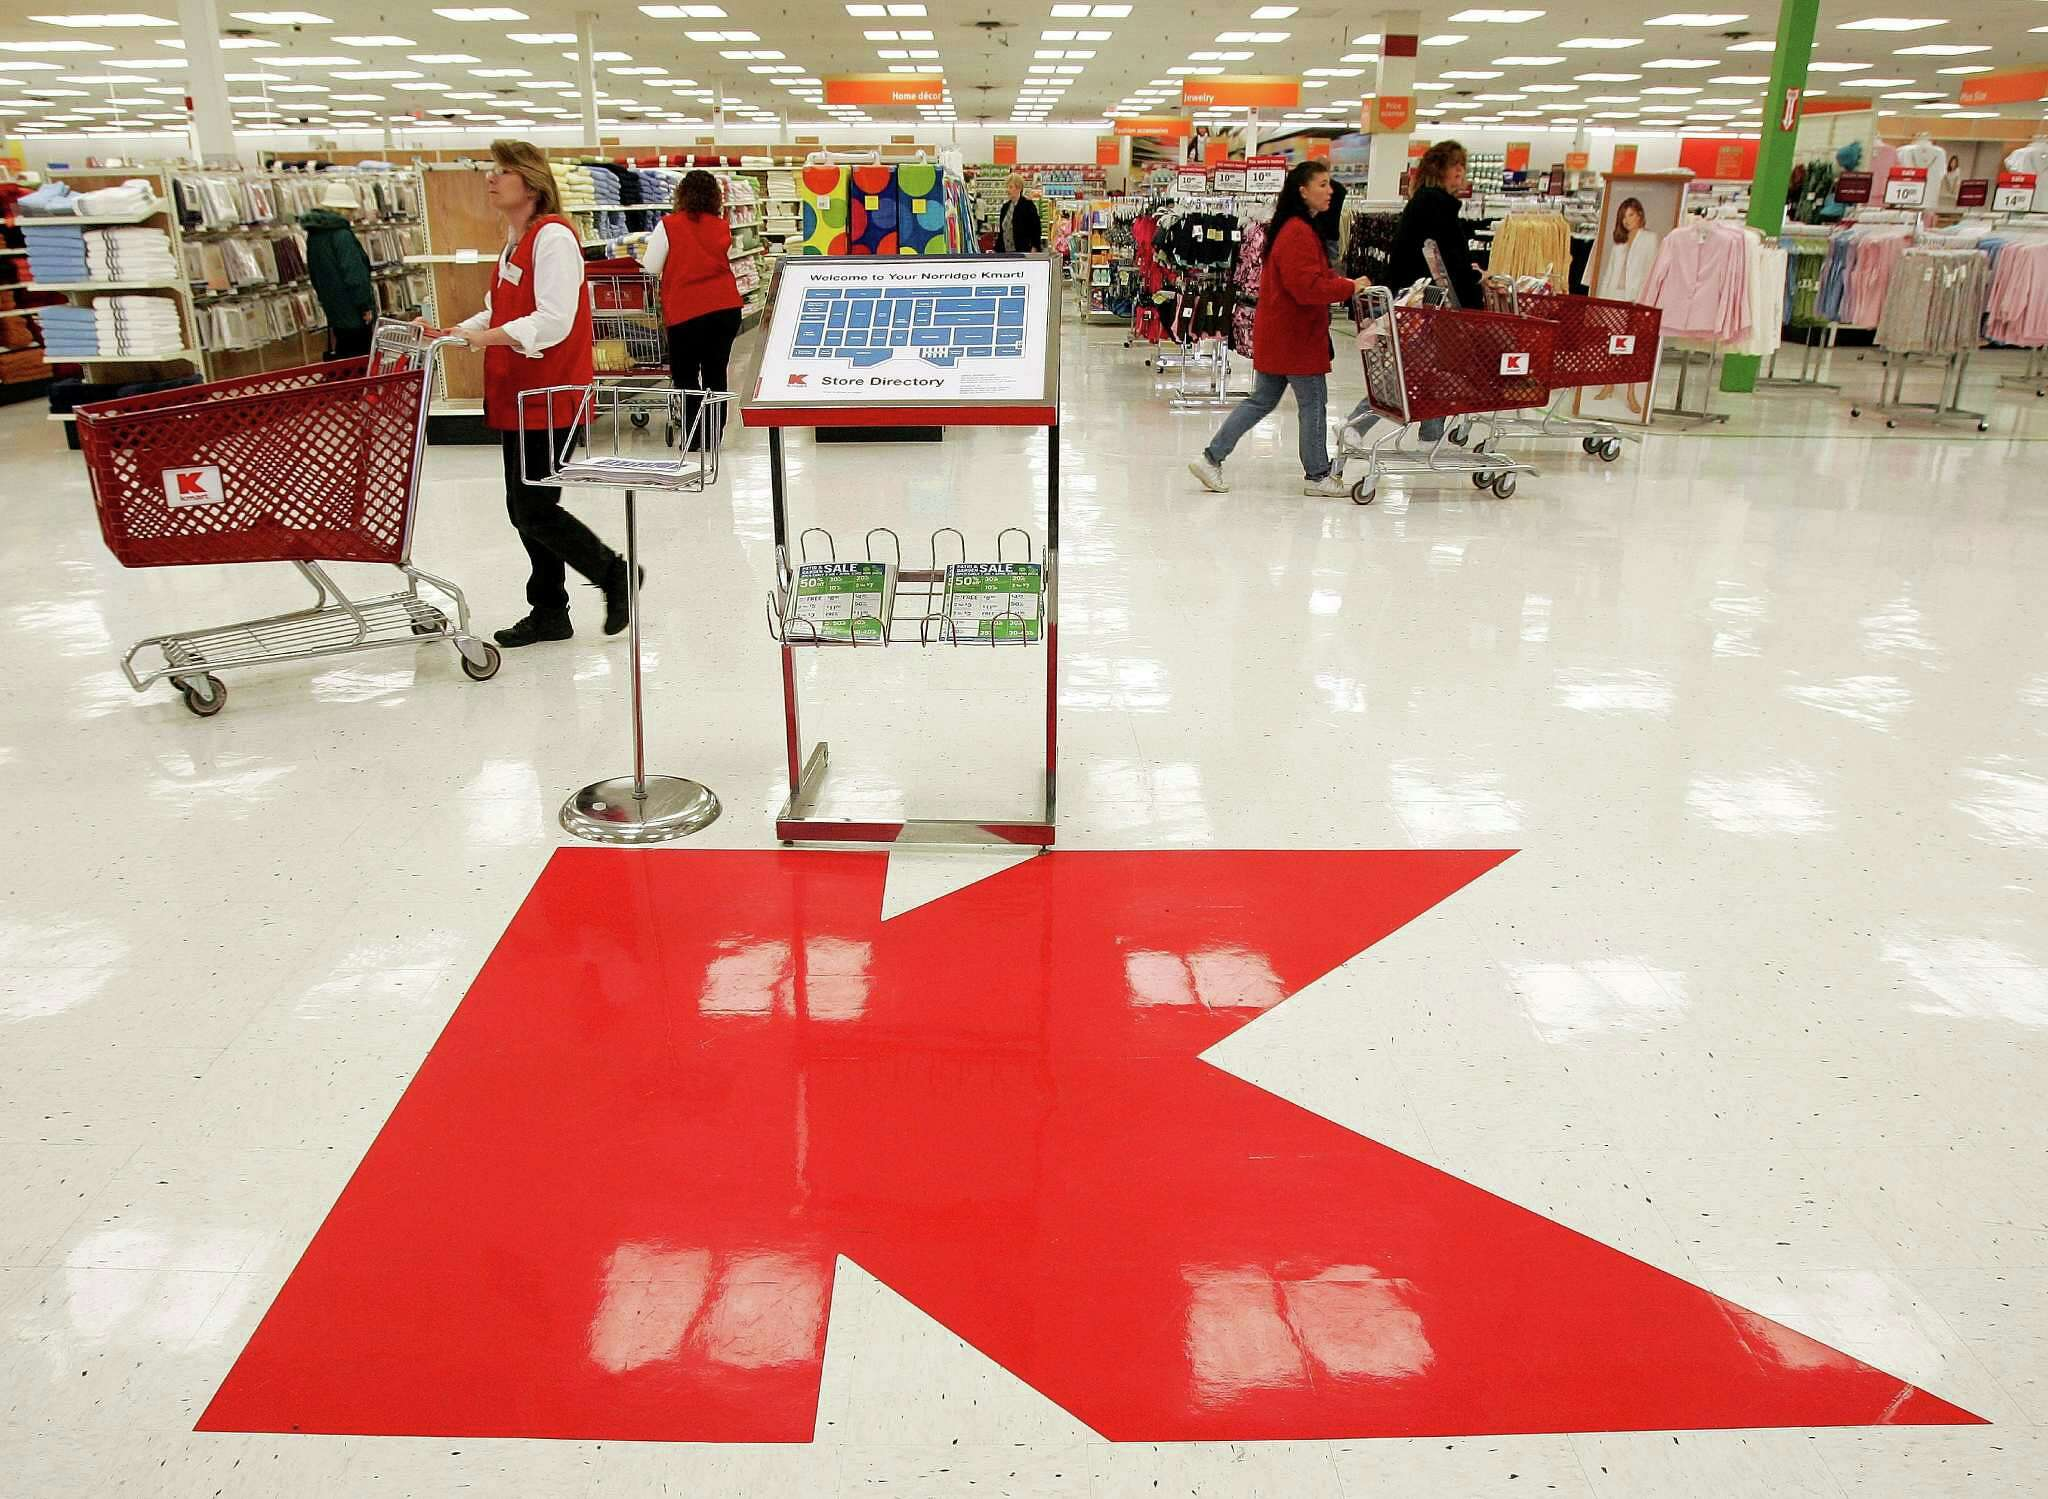 ce12a91e935faa Kmart employees believe the company is nearing bankruptcy and is in the  process of shutting down all its stores. p The chain has closed one-third  of its ...